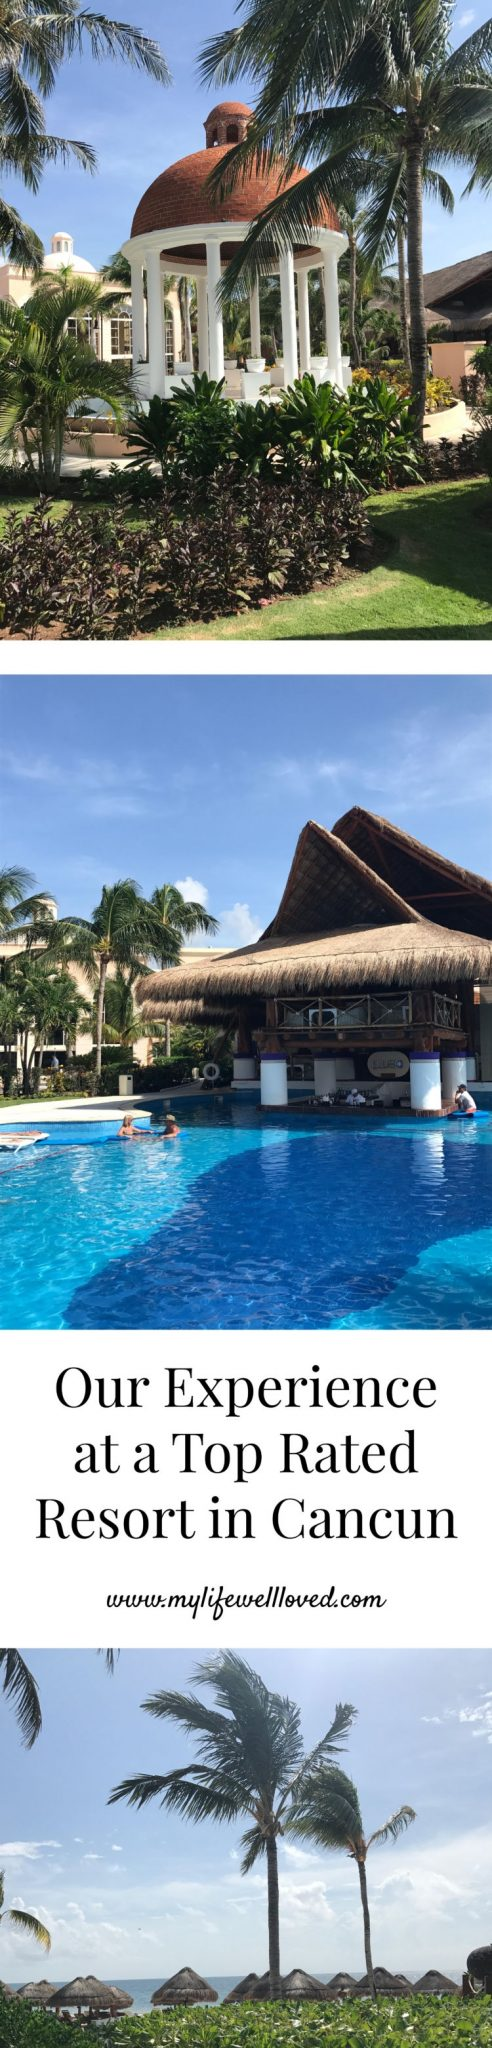 Excellence Riviera Trip Review - Save this for vacation plans for Mexico Travel from Alabama blogger Heather of MyLifeWellLoved.com // Excellence Riviera Cancun review and stay - travel blog #travel #mexico